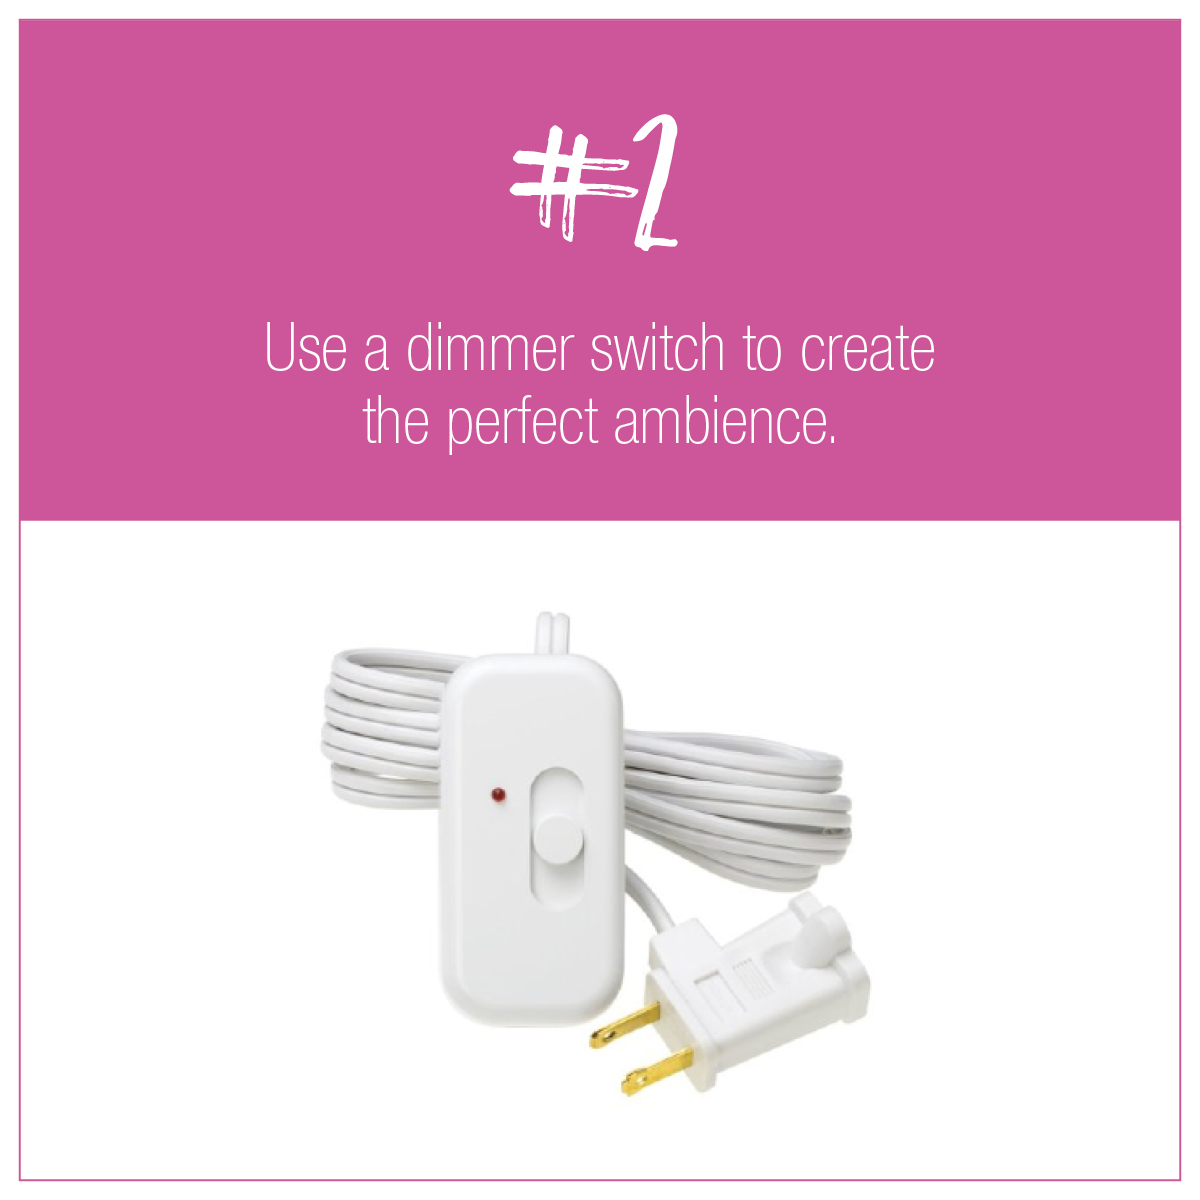 TIP 2: Use a dimmer switch to create the perfect ambience.